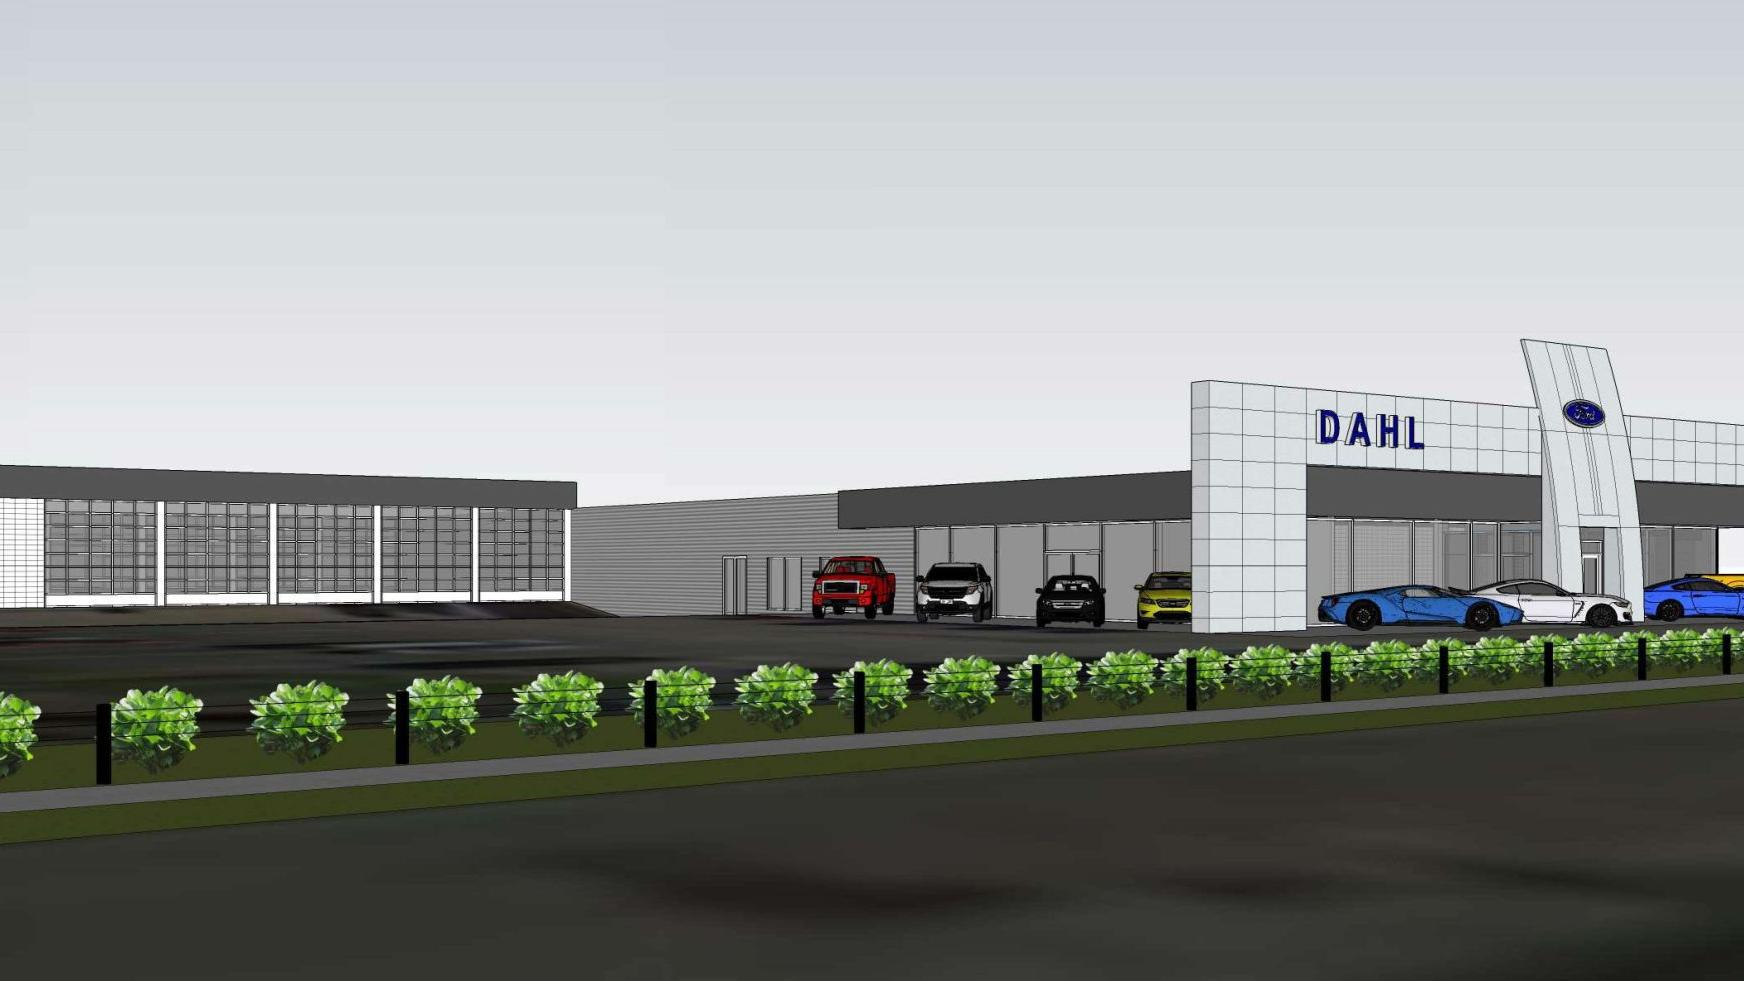 dahl ford begins dealership renovation business economy qctimes com dahl ford begins dealership renovation